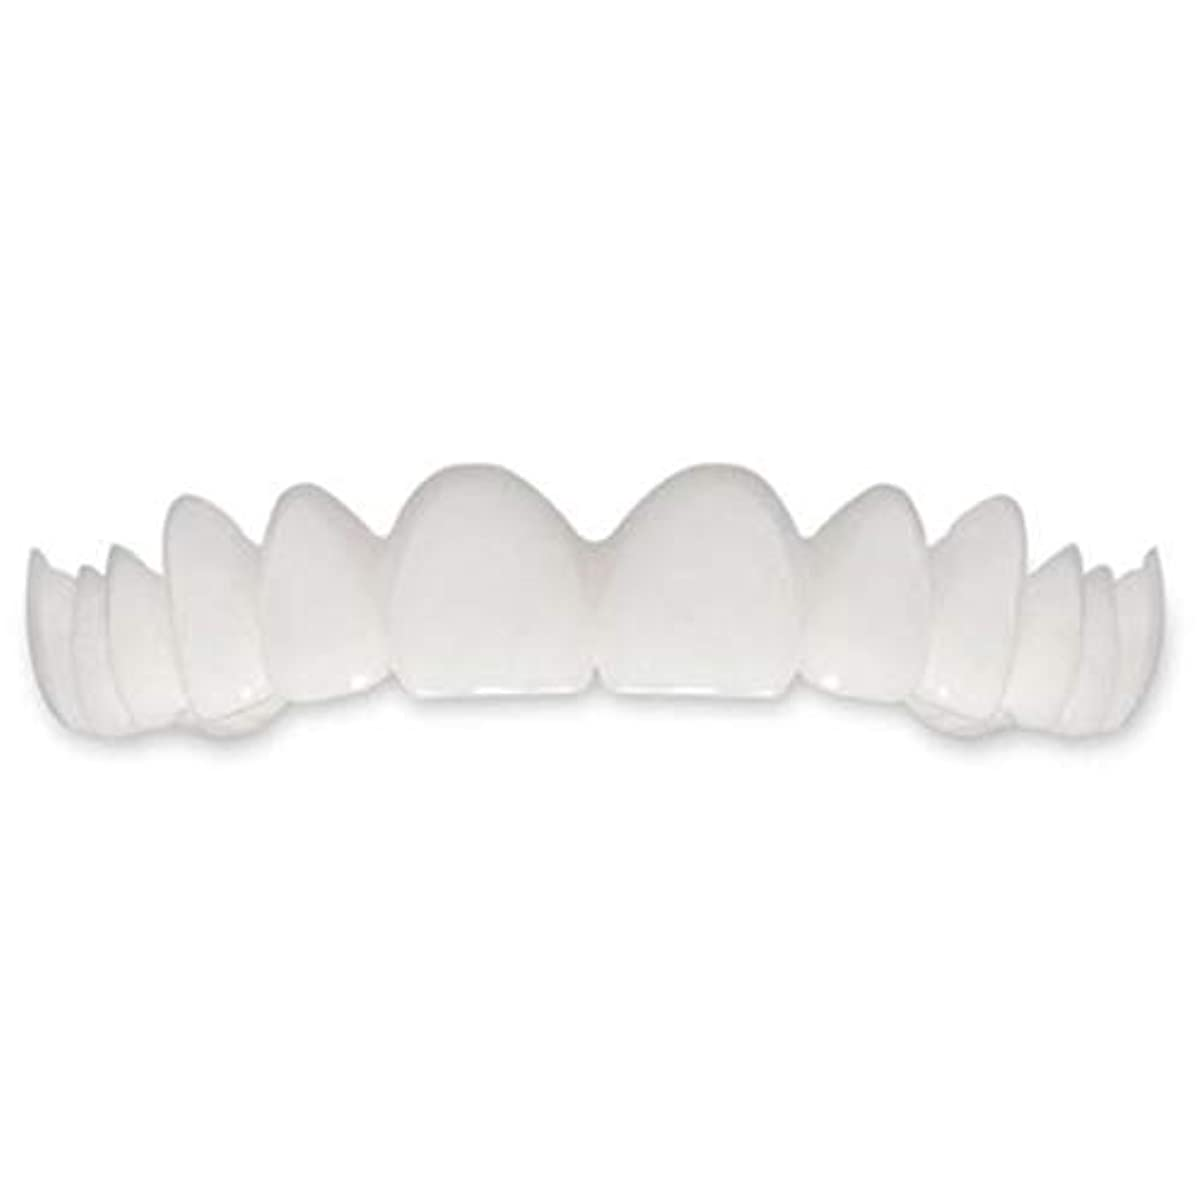 減衰そっと閉塞Tooth Instant Perfect Smile Flex Teeth Whitening Smile False Teeth Cover-ホワイト